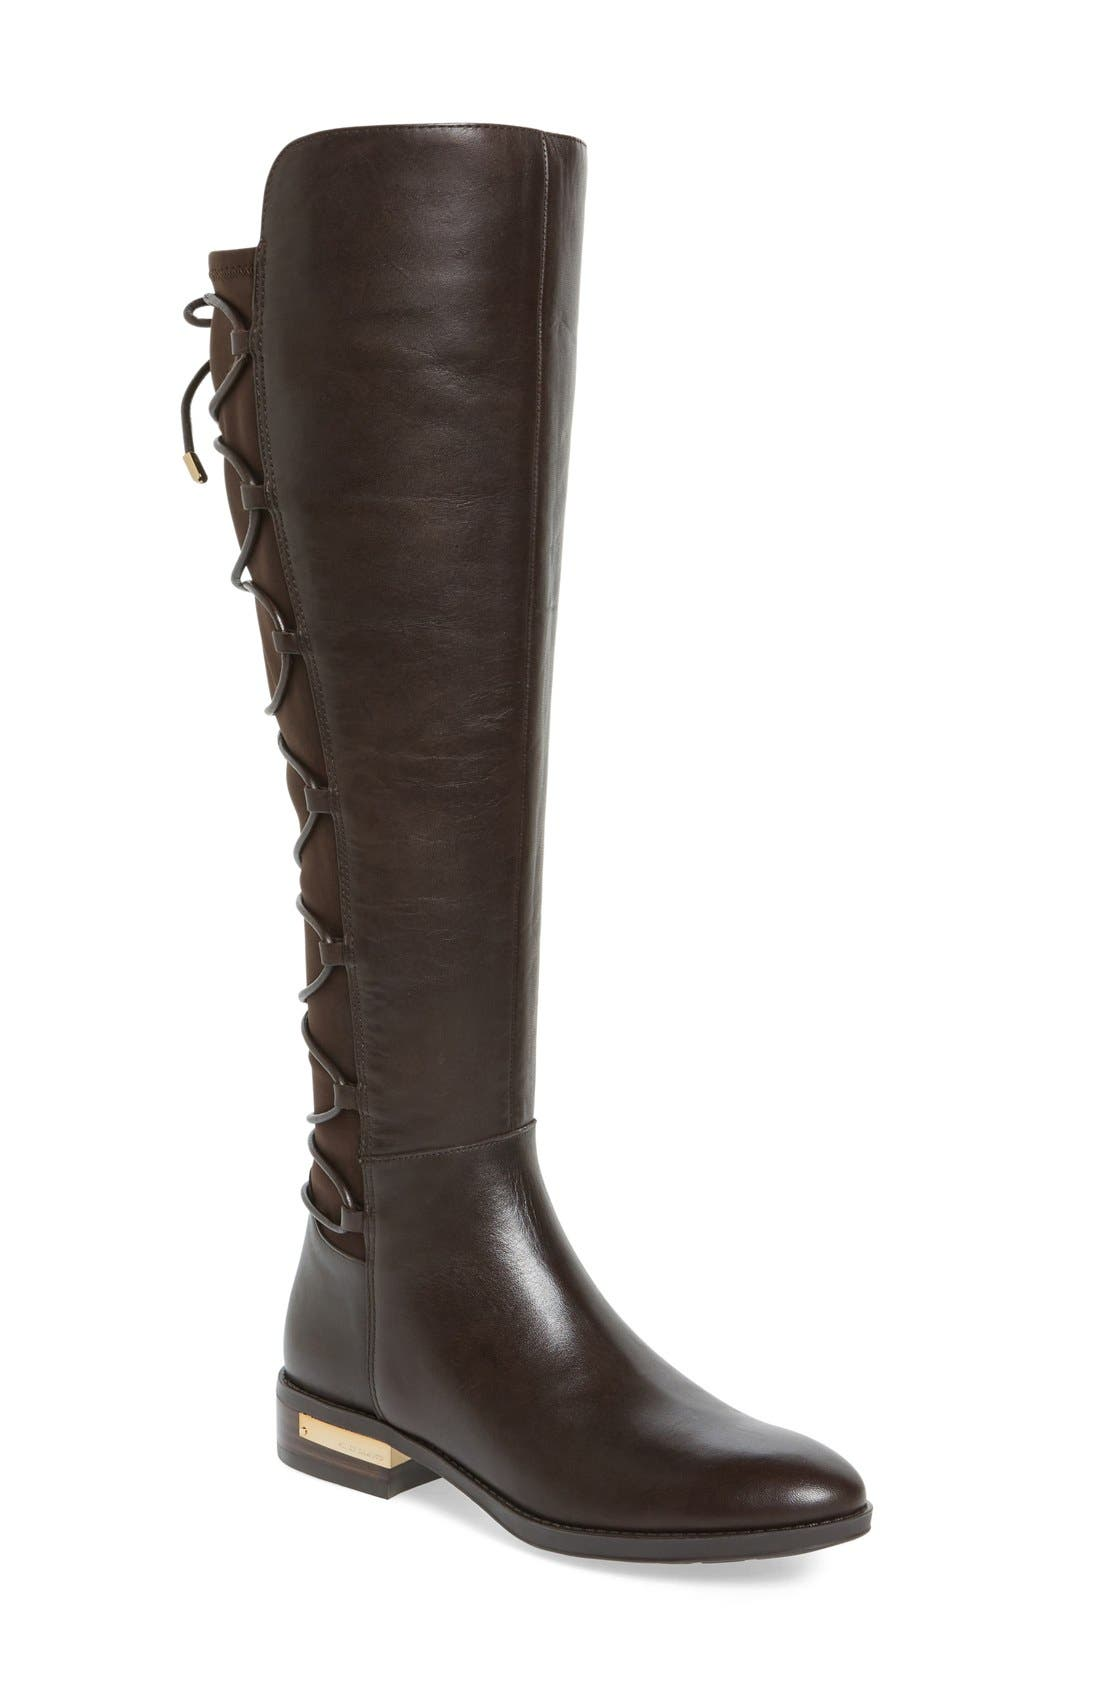 Alternate Image 1 Selected - Vince Camuto Parle Over the Knee Corset Boot (Women)